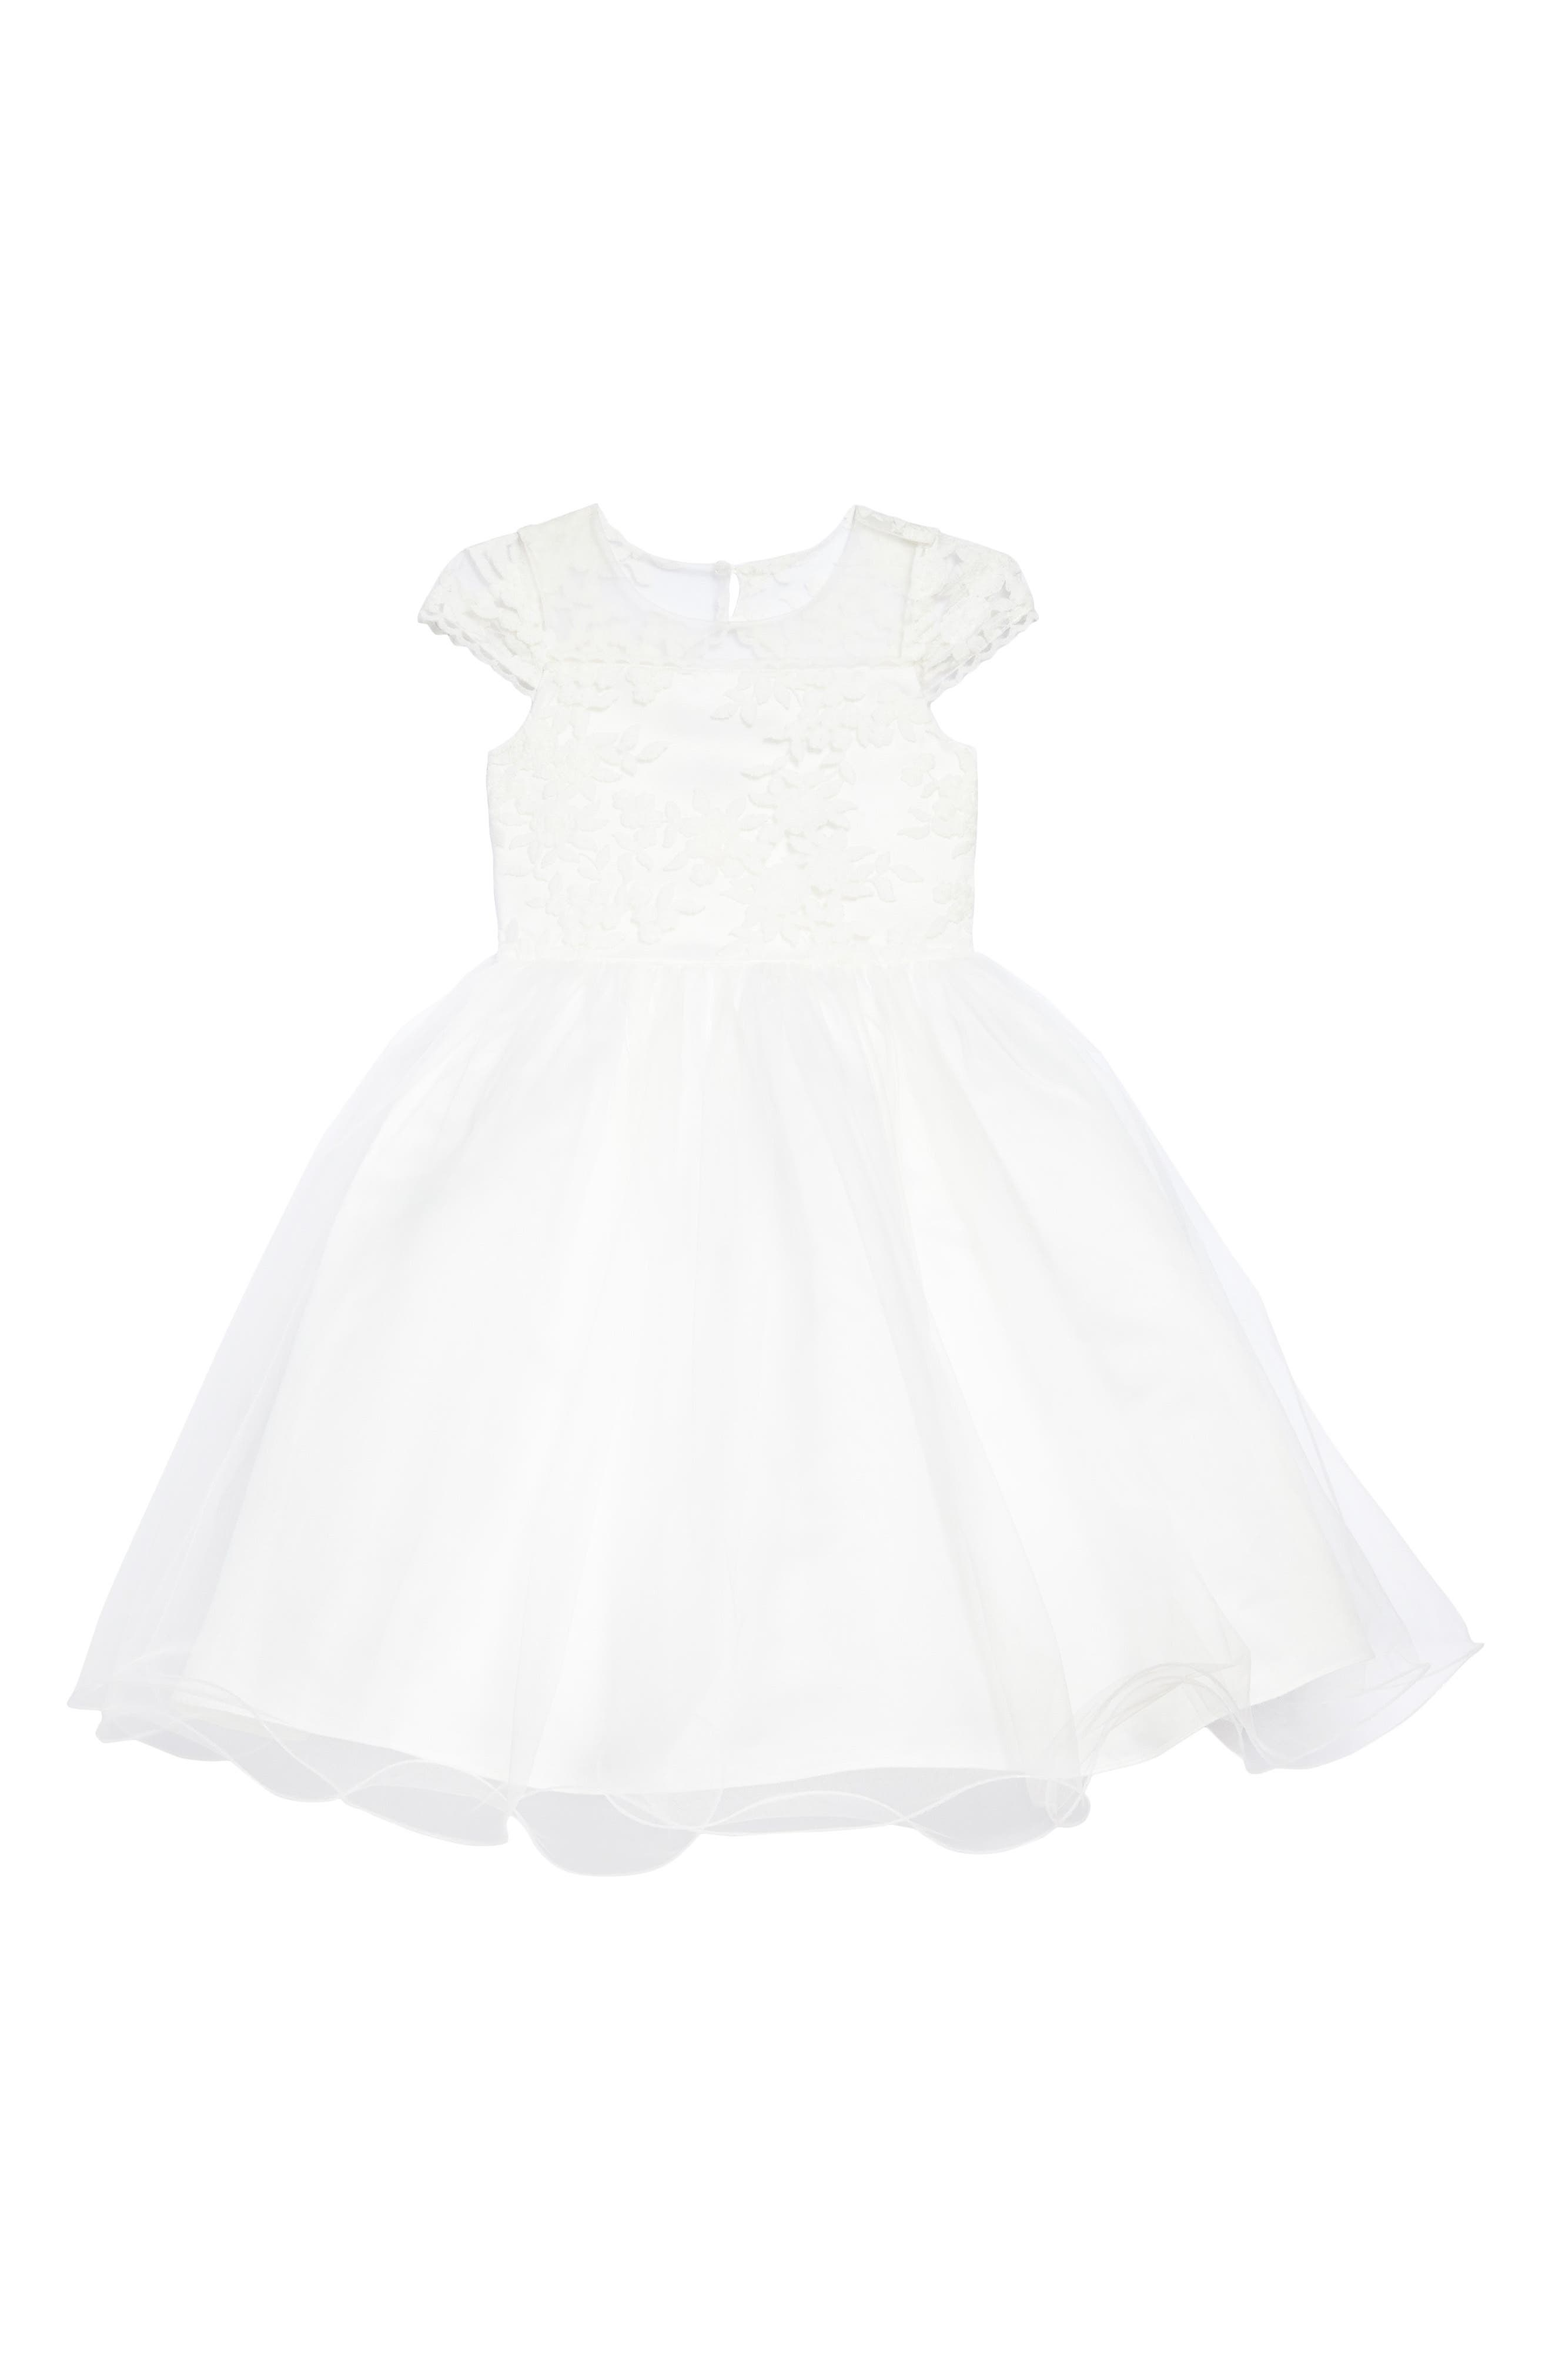 Toddler Kids Baby Girls Long Sleeve Knitted Tulle Tutu Dresses Jersey Mesh Party Dress Outfit